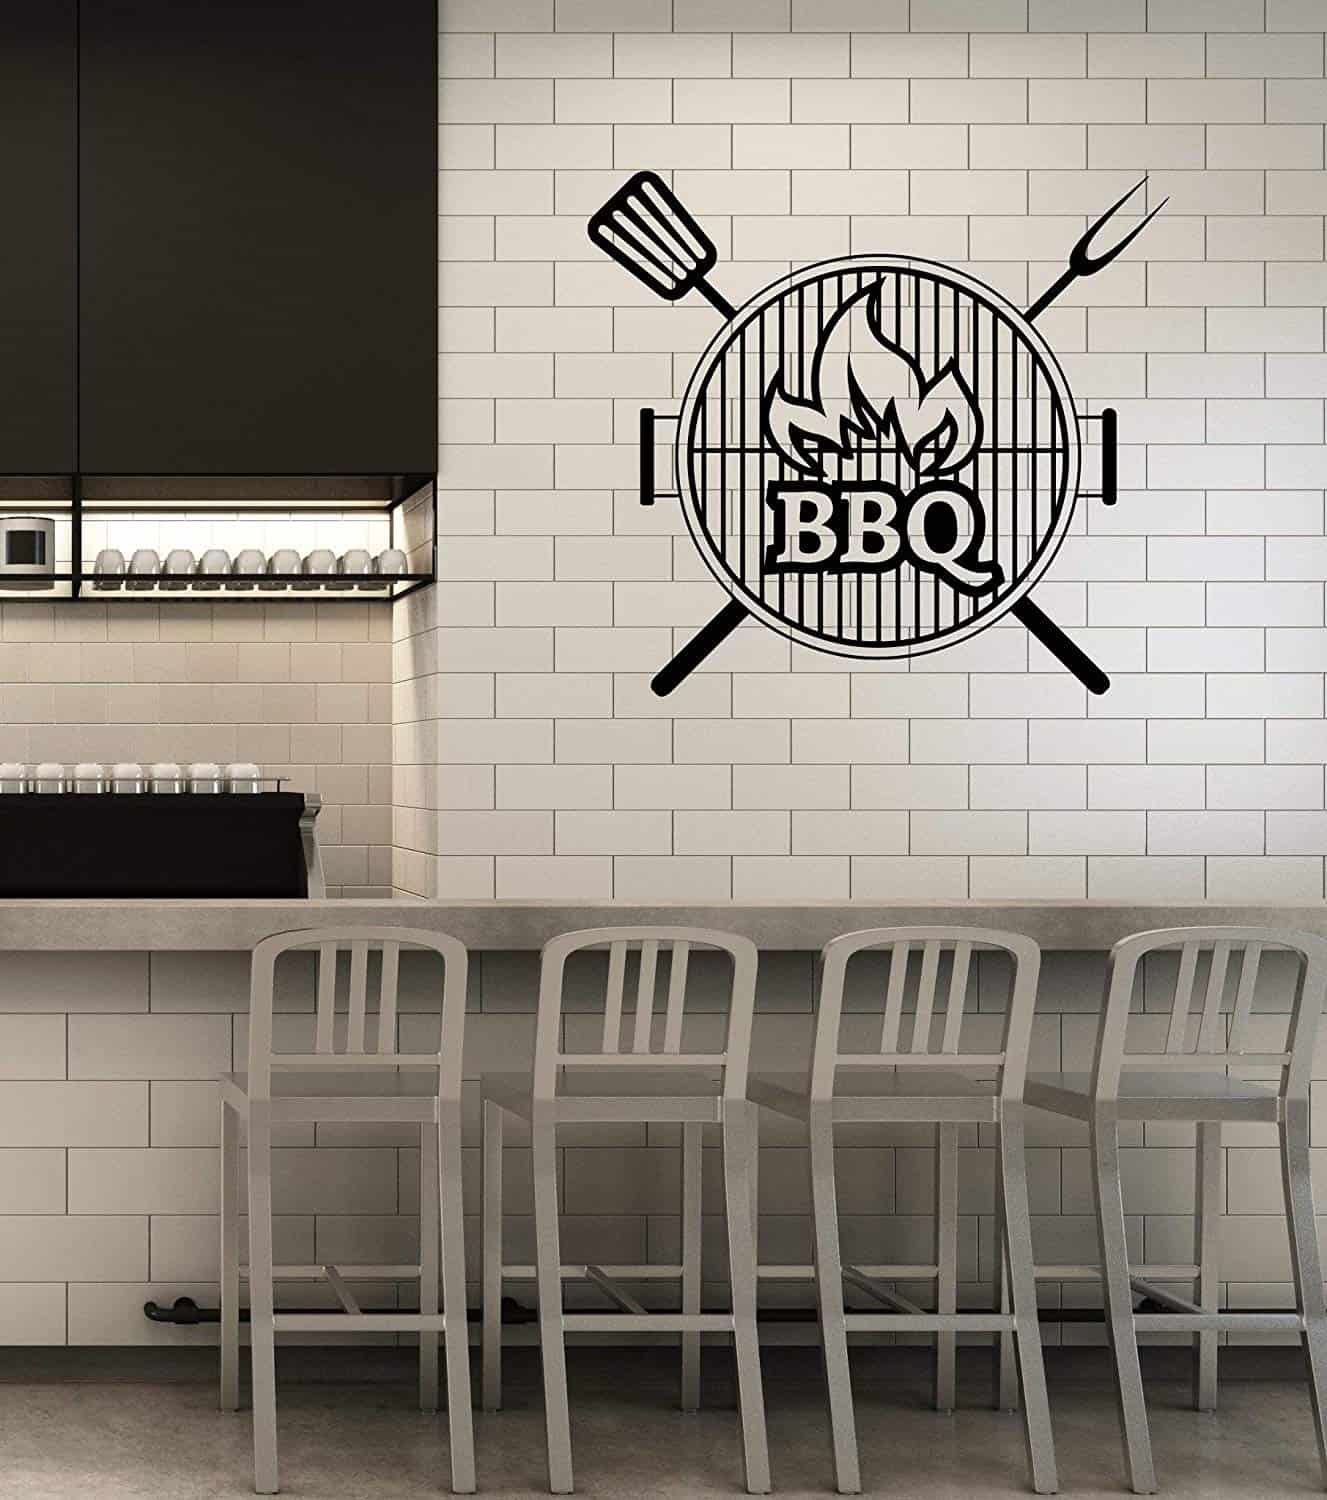 BBQ Smokehouse wall decal